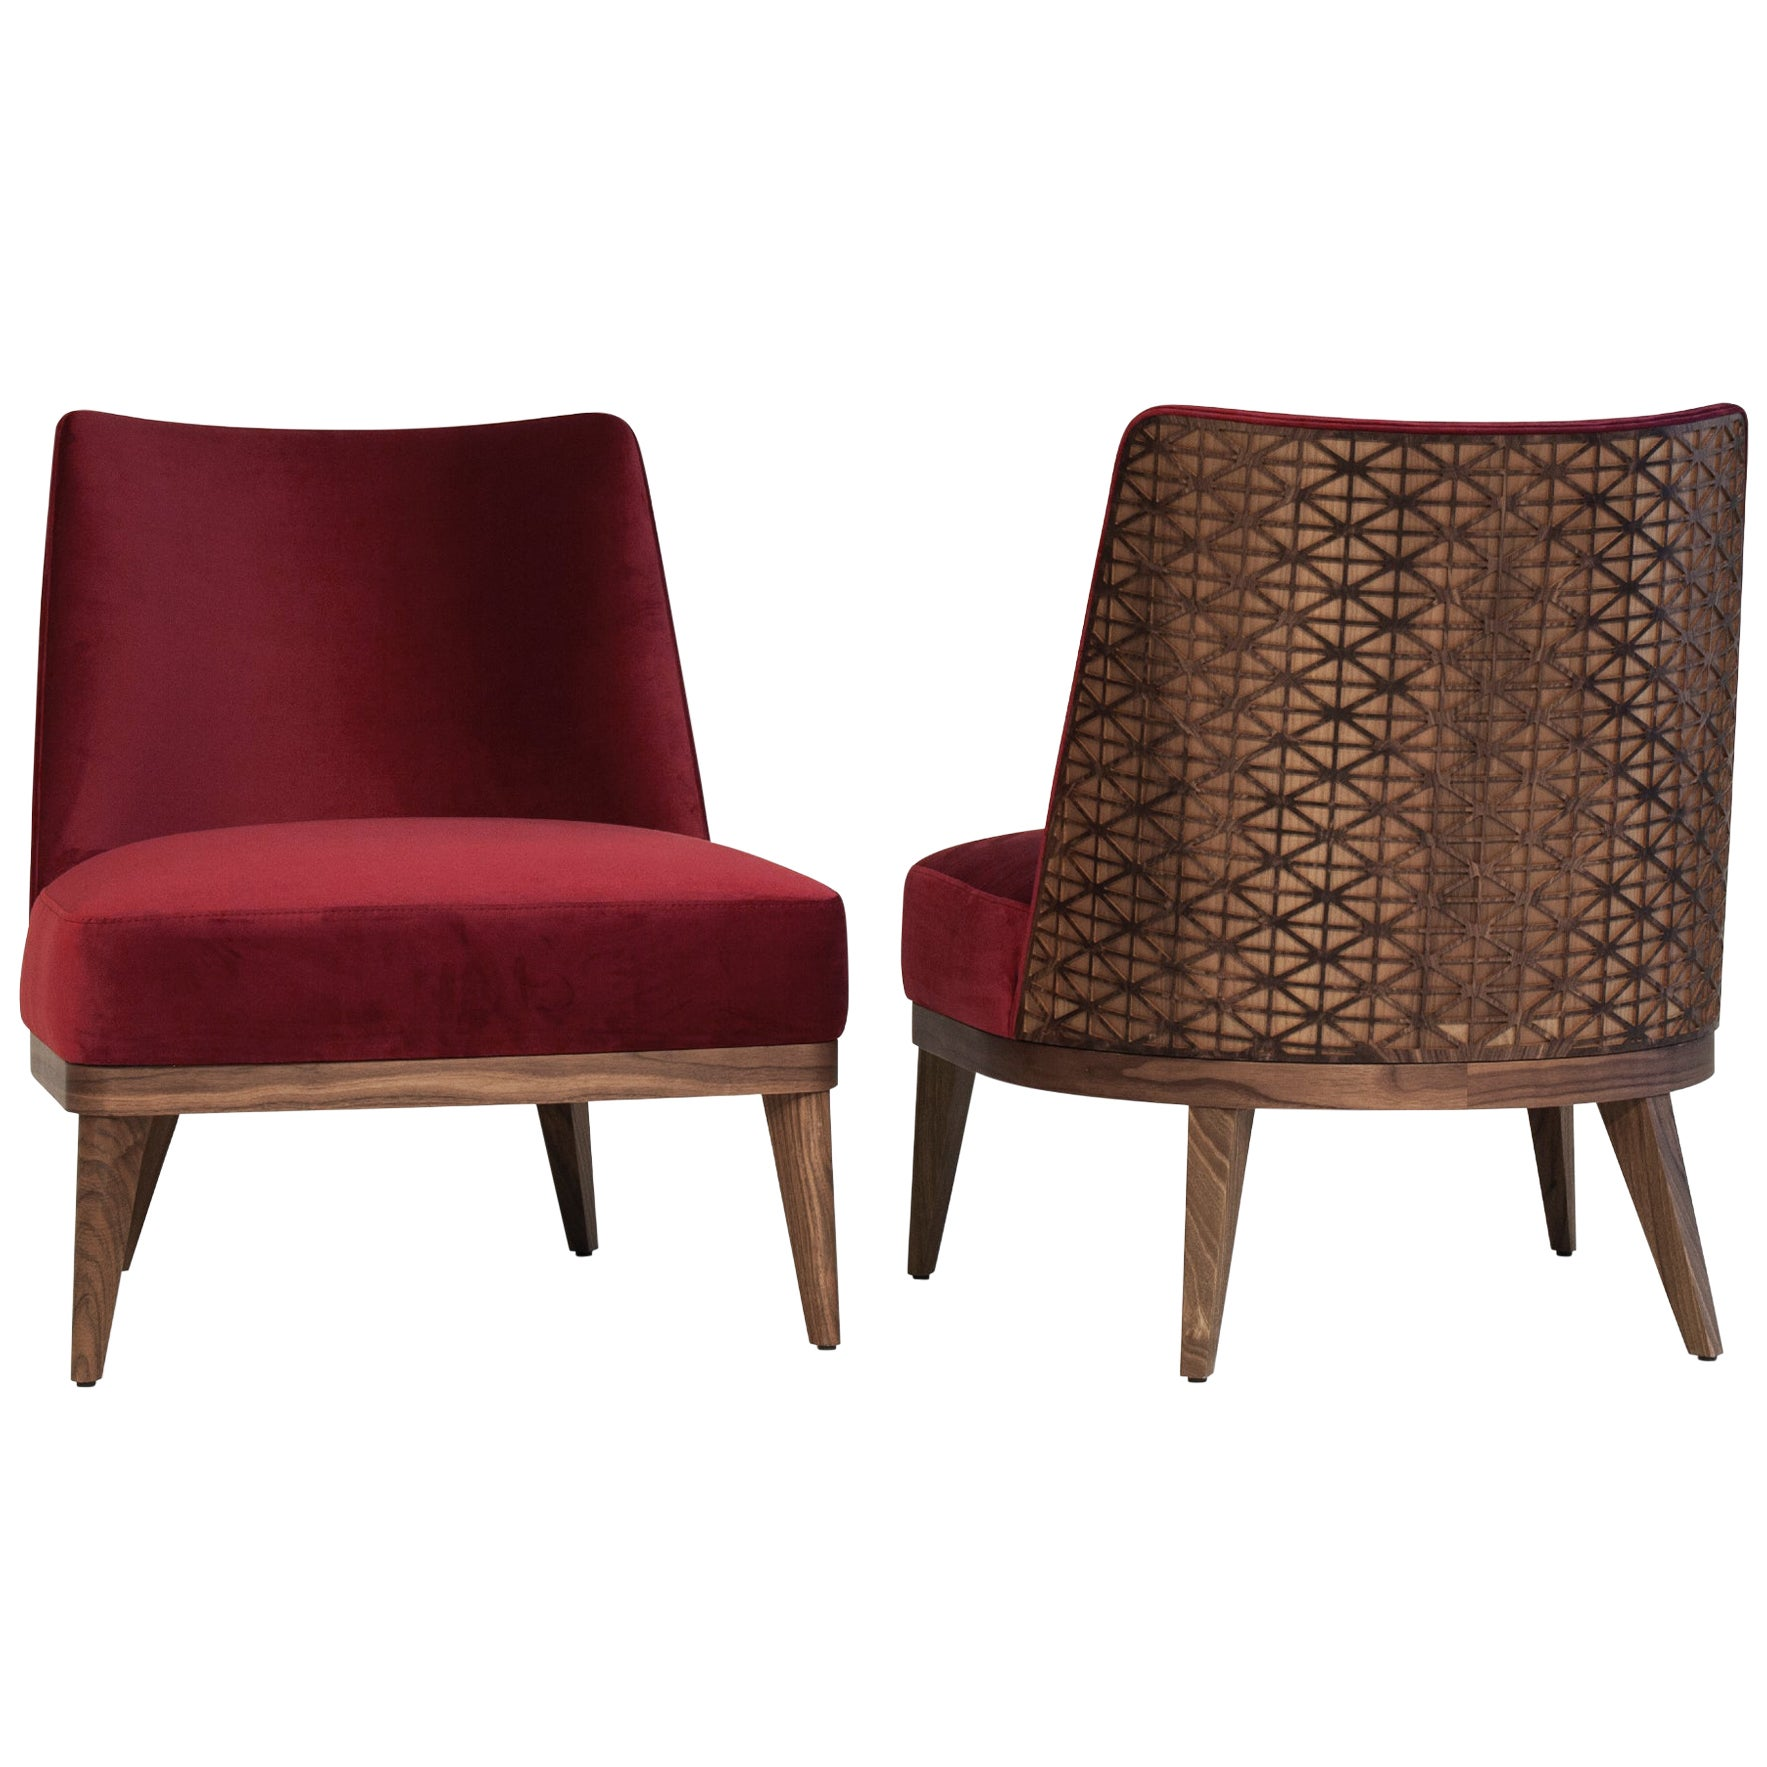 Fez Lounge Chair, Wood Patterned Backing Upholstered in Red Velvet Chair